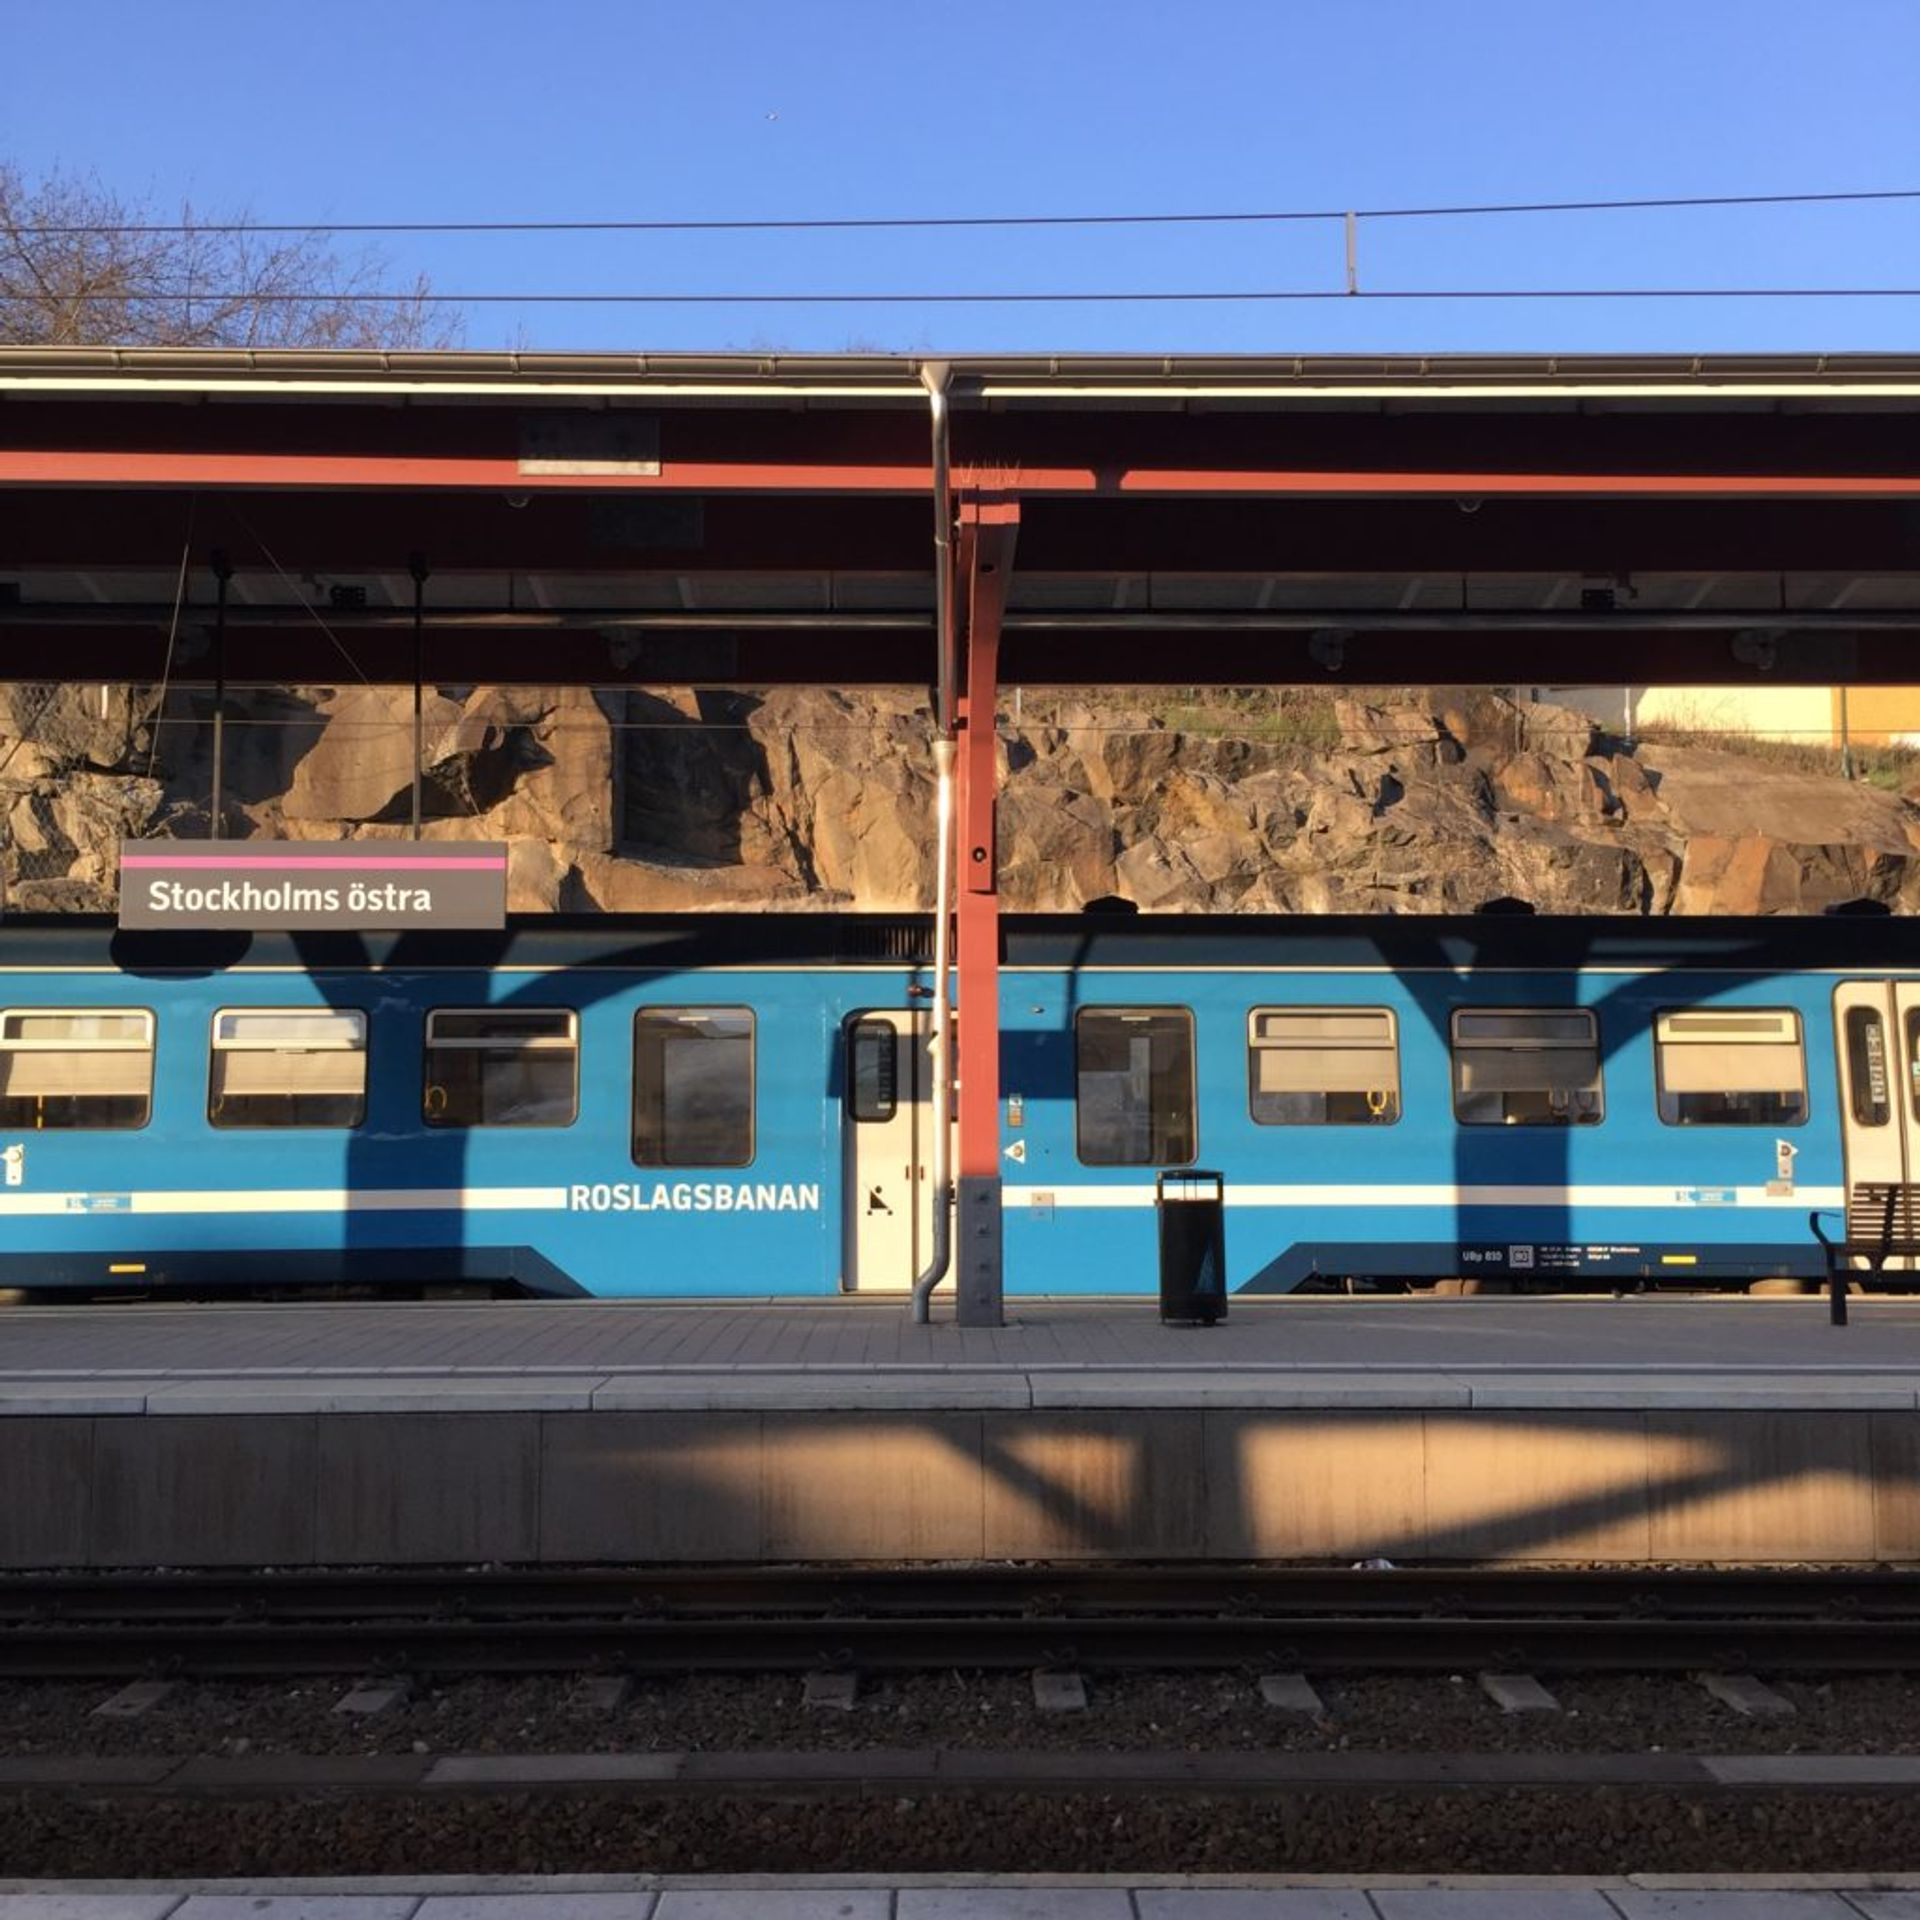 A blue train in Stockholm.